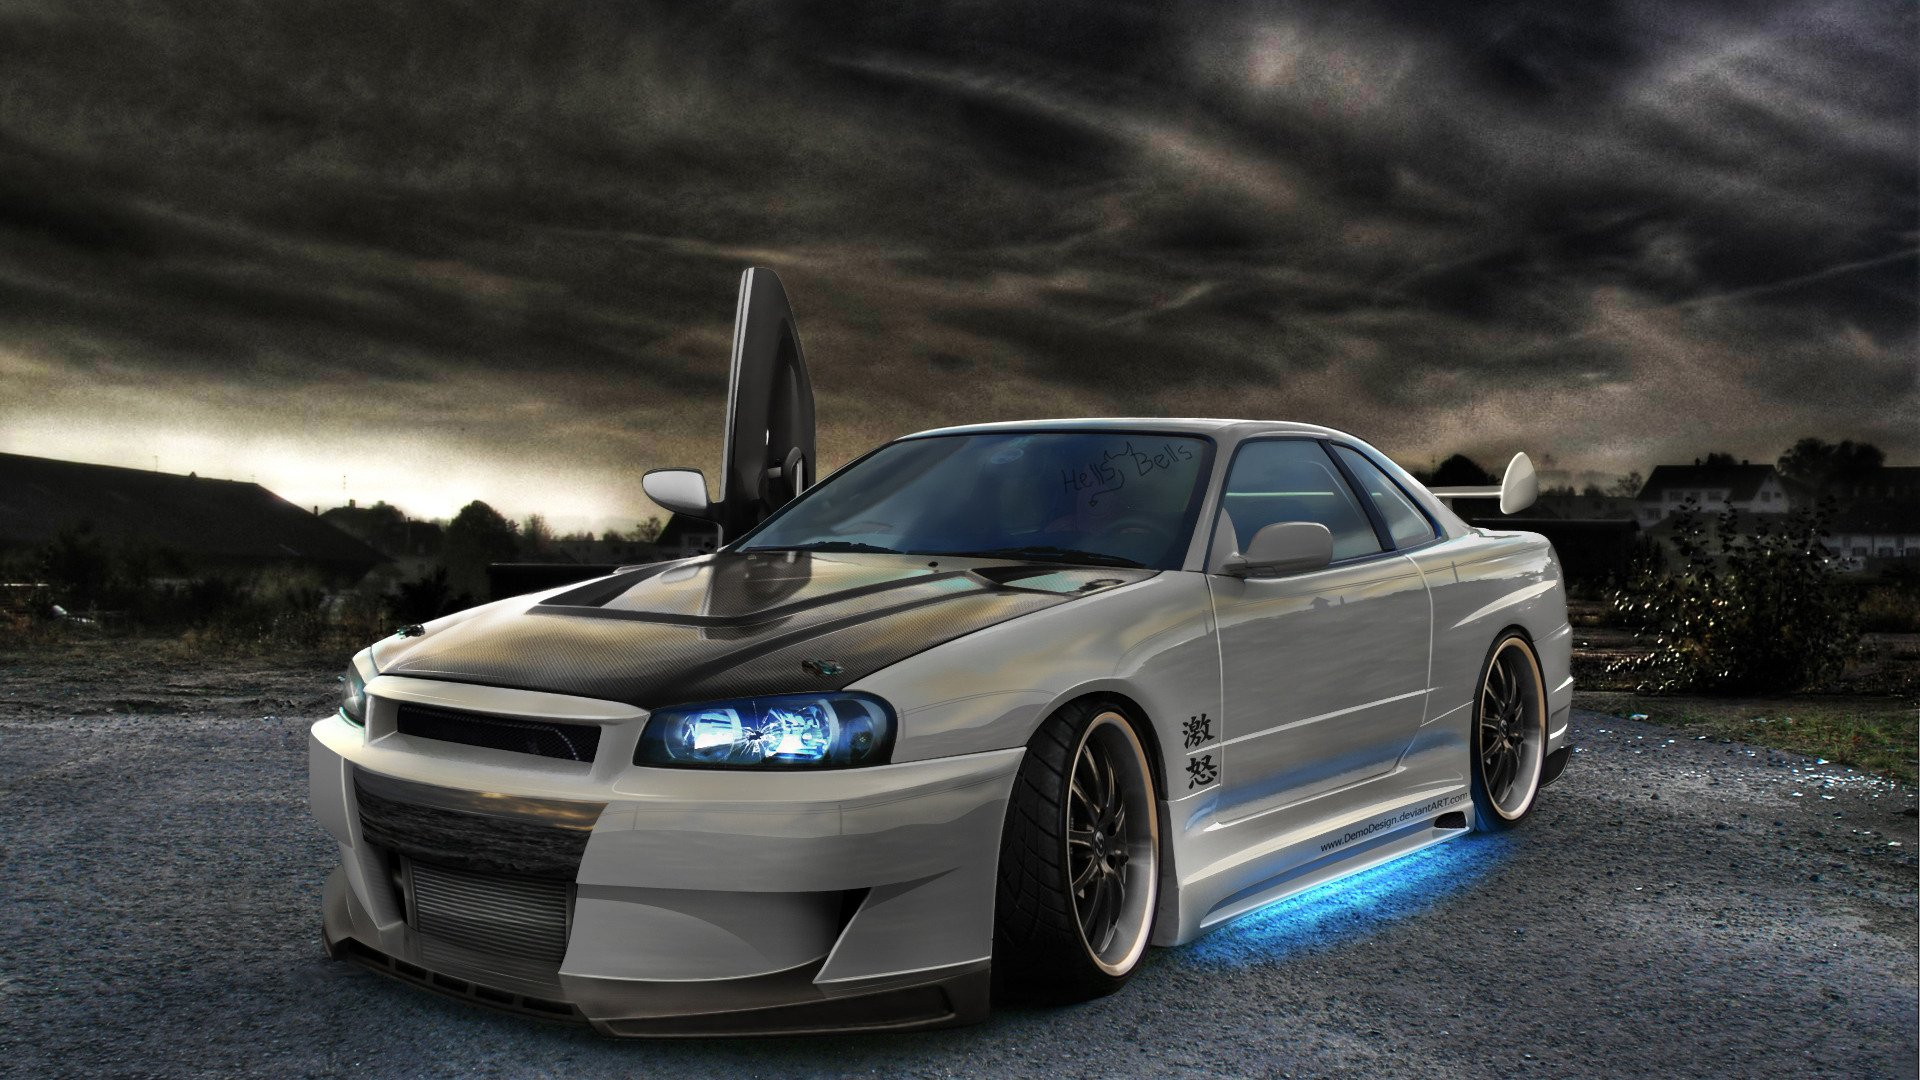 nissan skyline gtr r34 tuning wallpaper 1920x1080 438455 wallpaperup. Black Bedroom Furniture Sets. Home Design Ideas